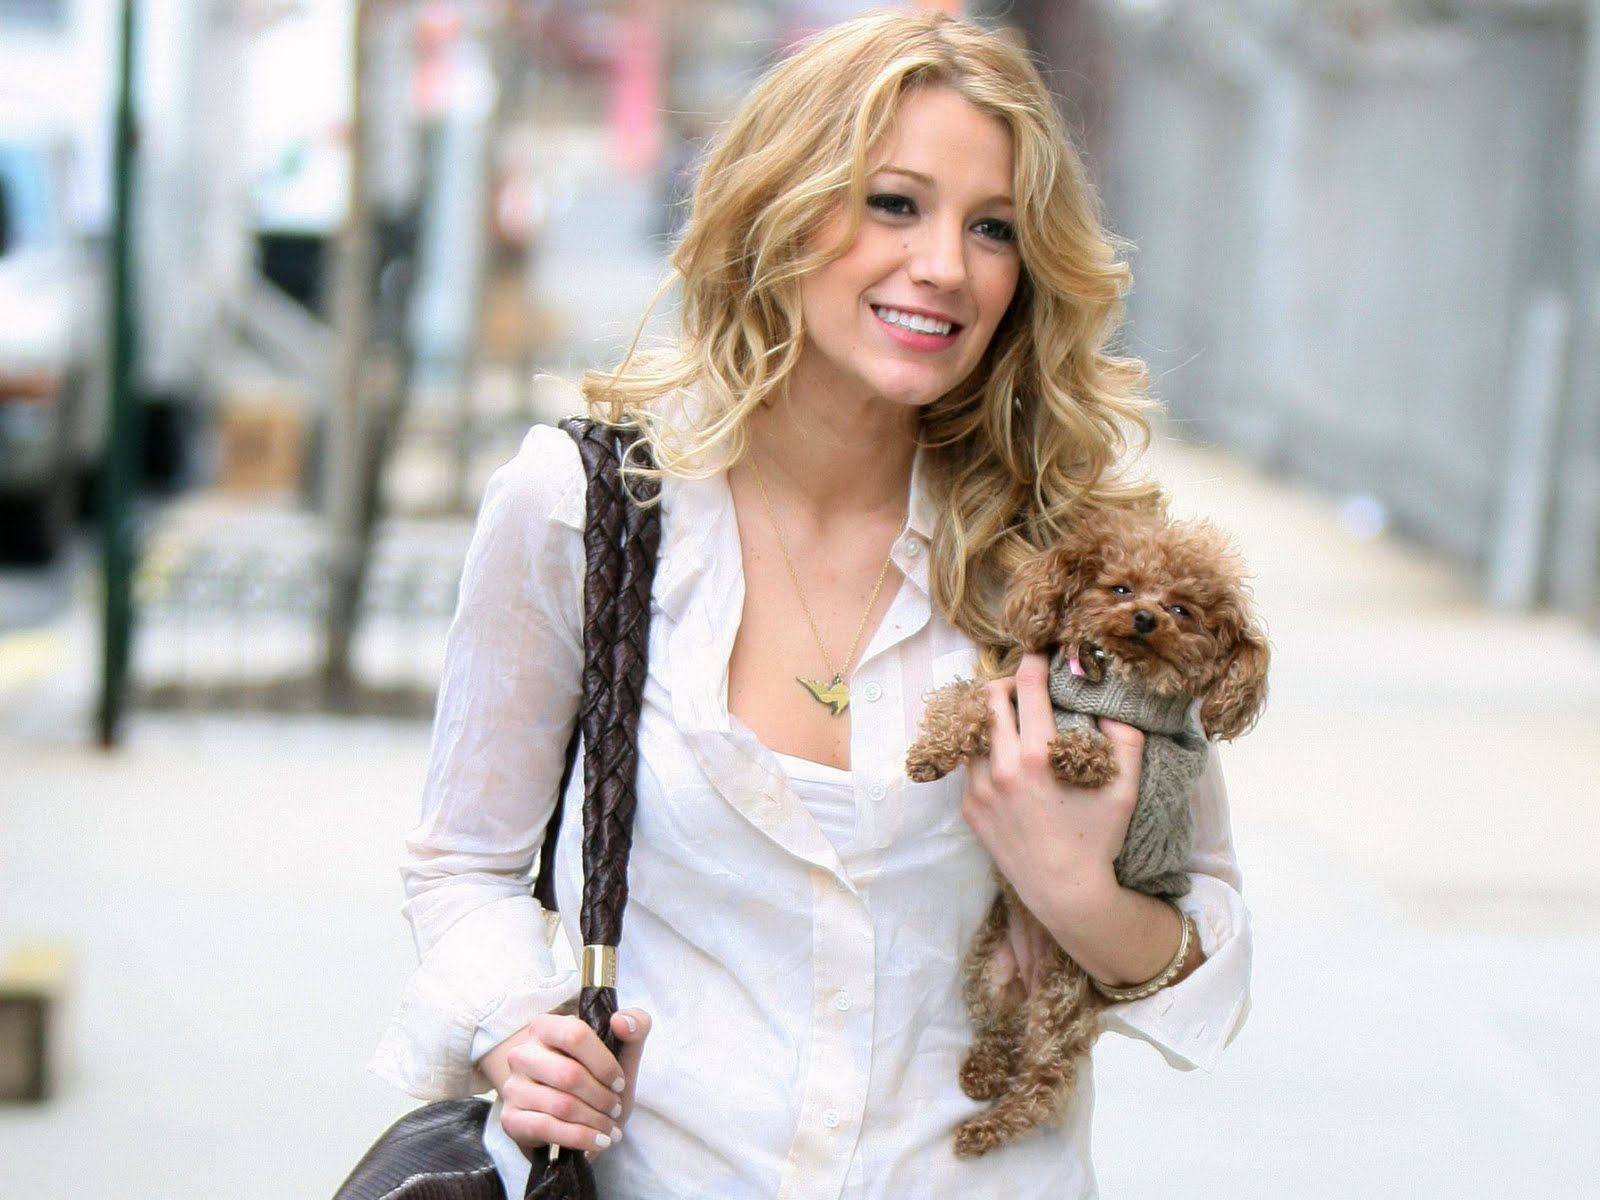 Curly hair and cute puppy uc blake lively uc pinterest